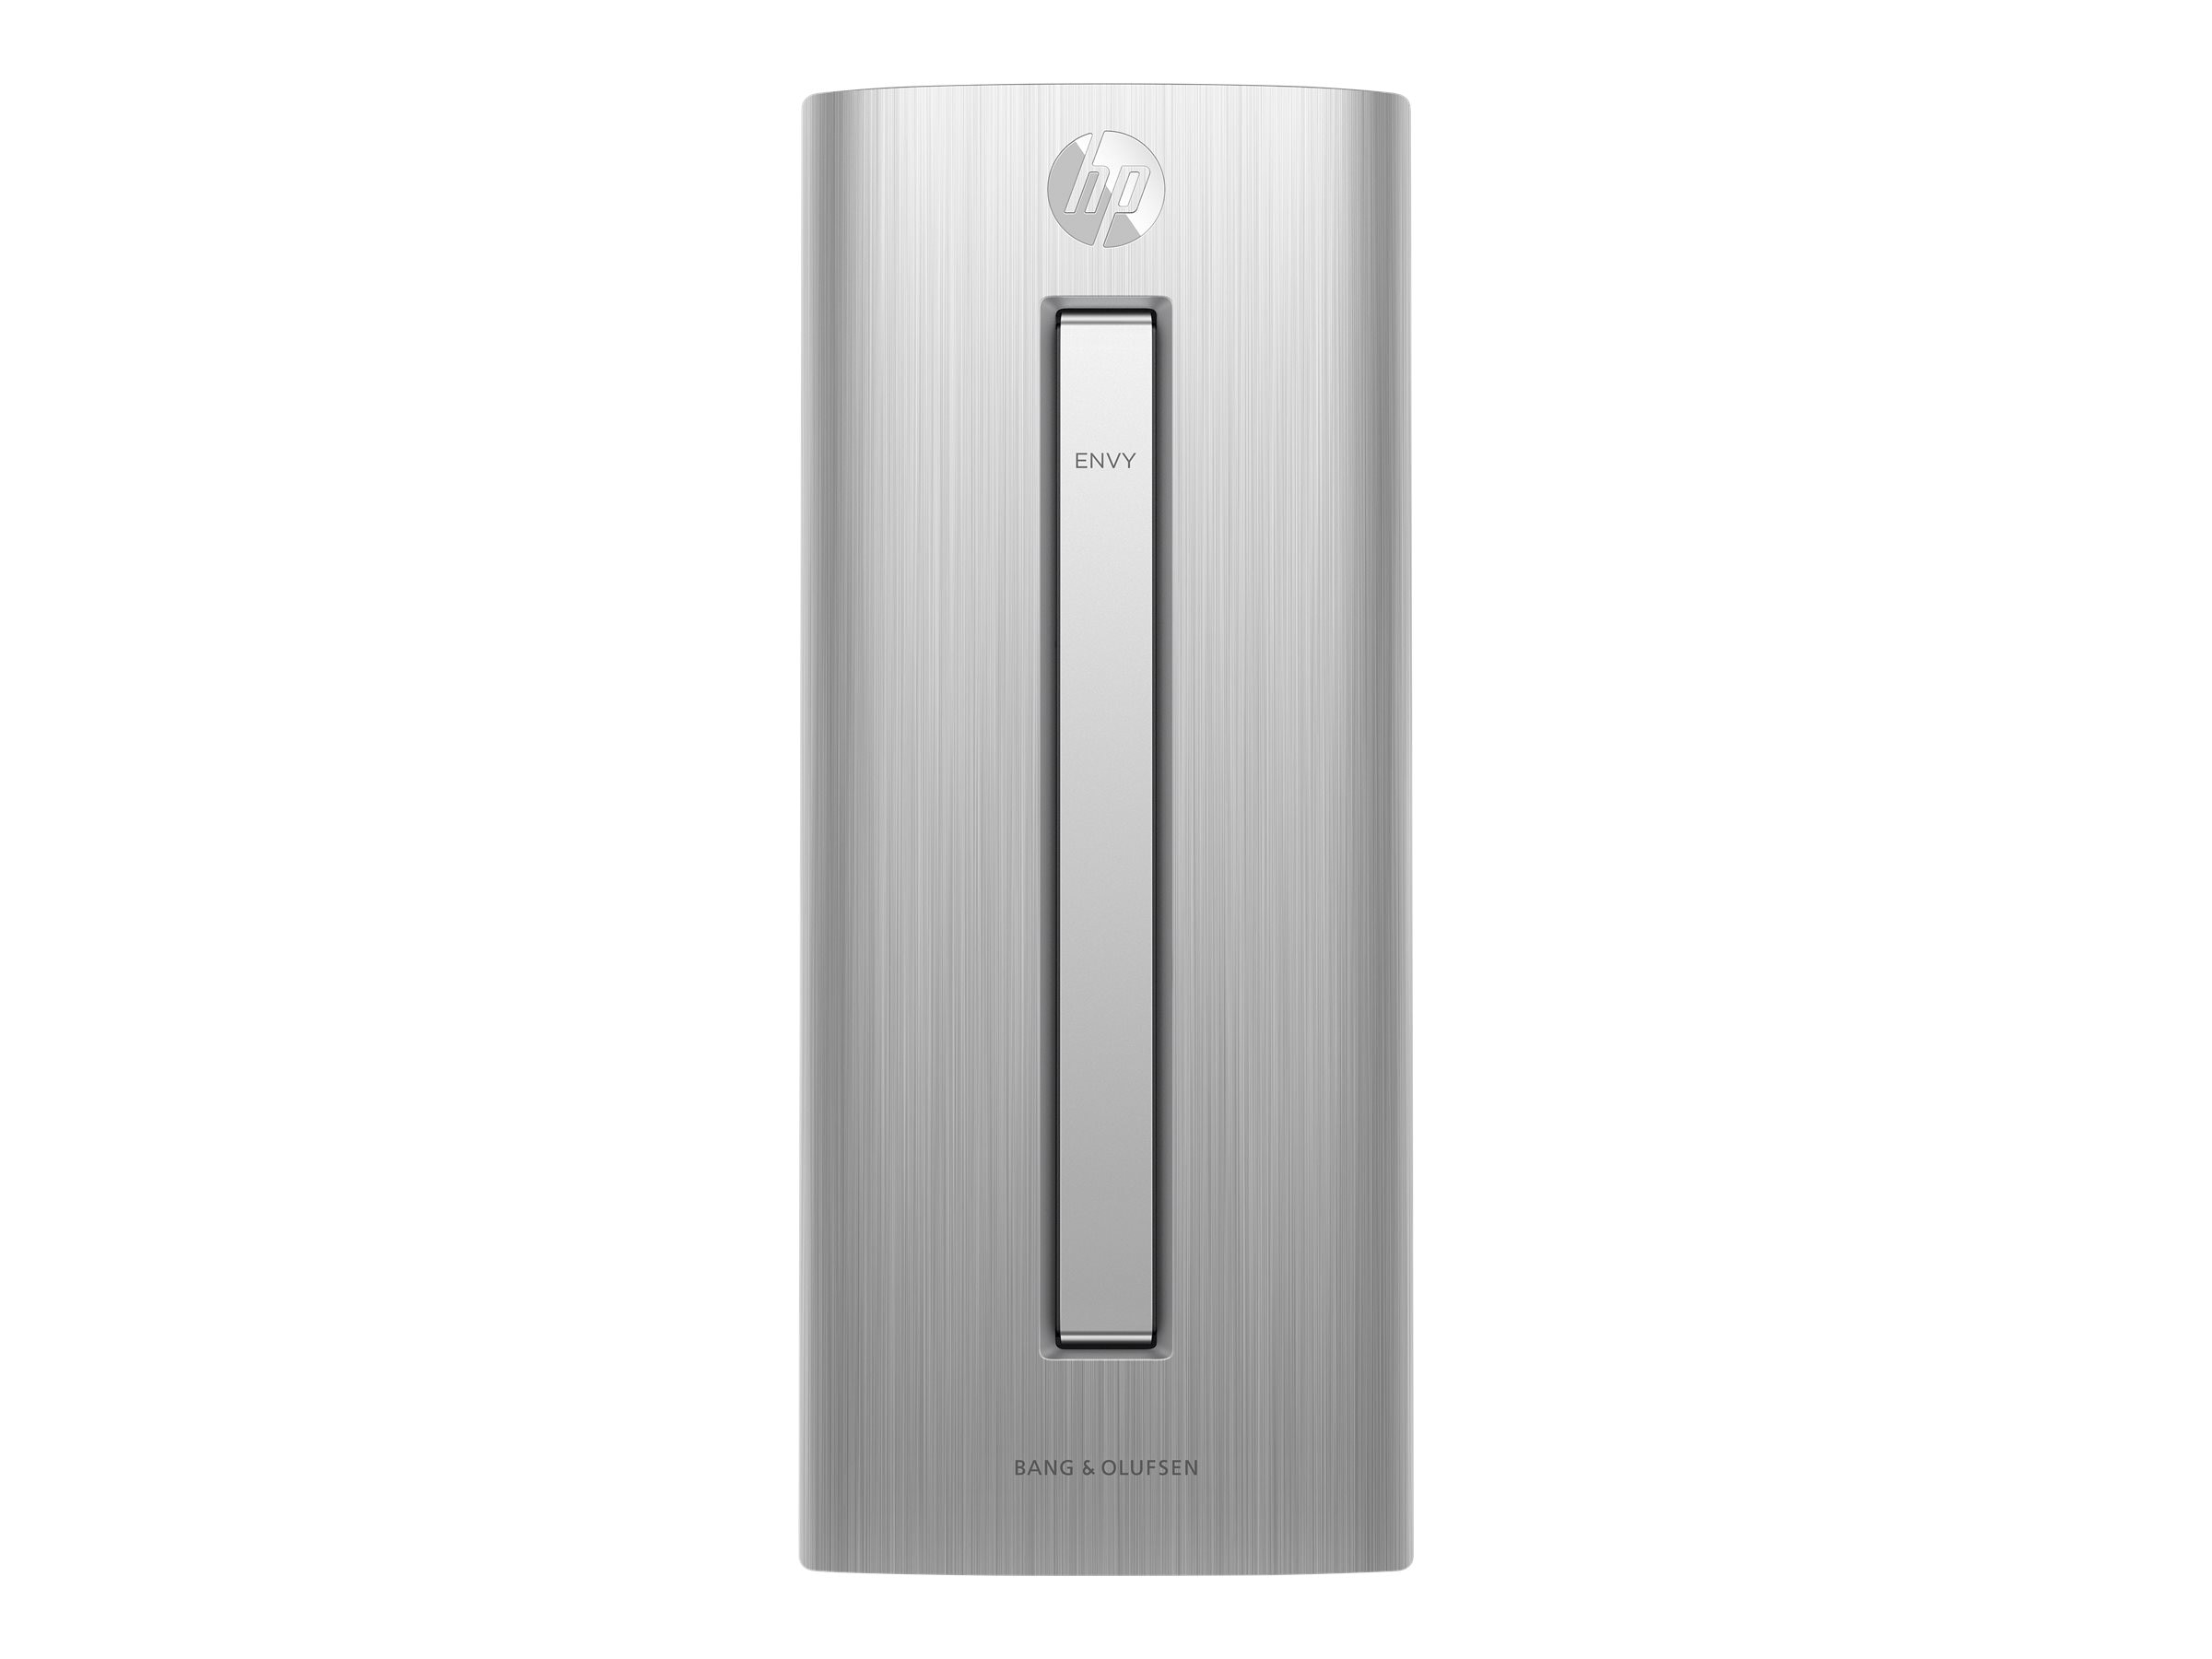 HP Envy Desktop Core i5-6400 8GB 256GB SSD 1TB, X6F48AA#ABA